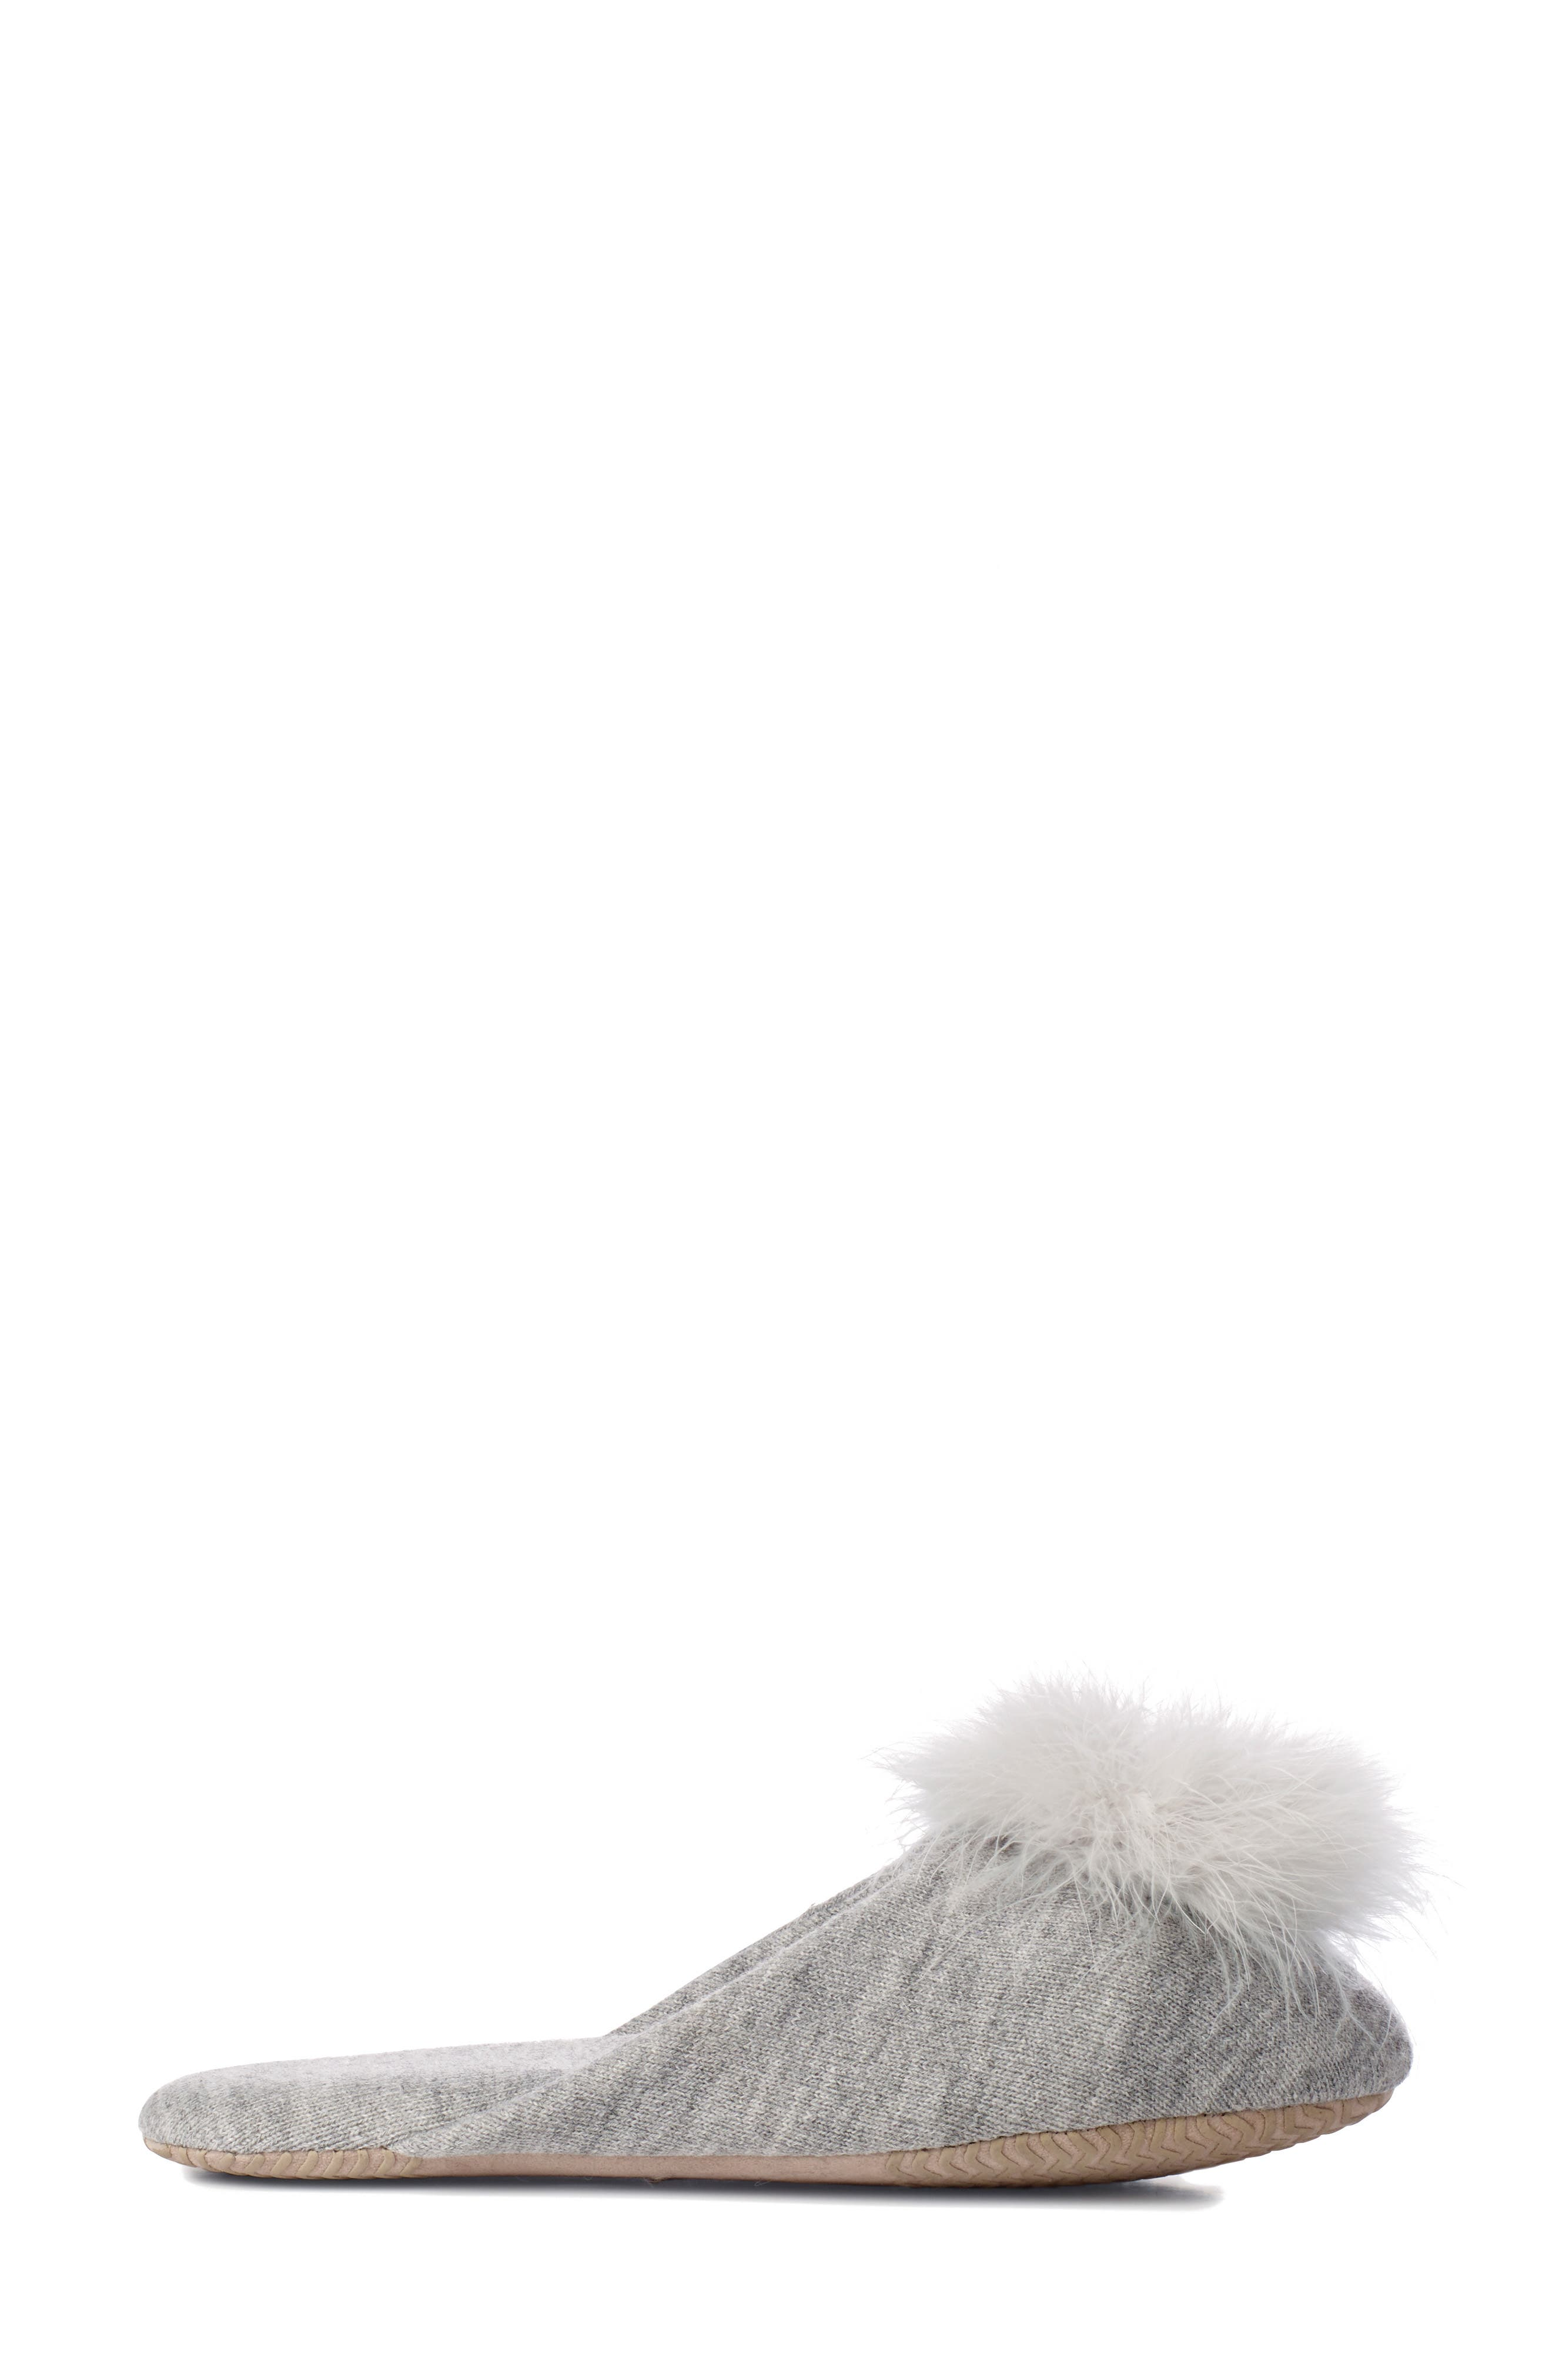 Feather Pompom Mule Slipper,                             Alternate thumbnail 3, color,                             PALE GREY HEATHER